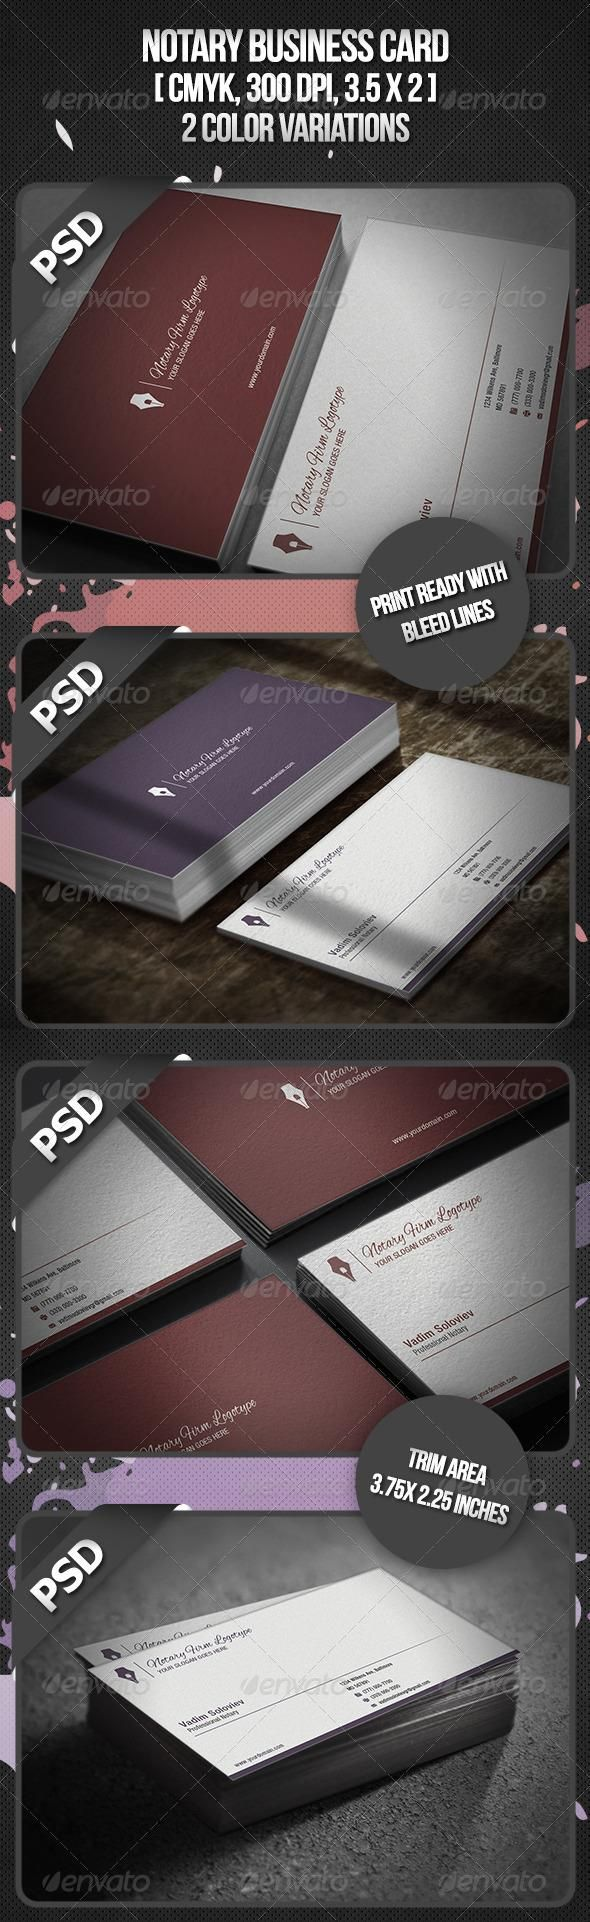 1661 best business card design images on pinterest cards file c notary business card magicingreecefo Choice Image